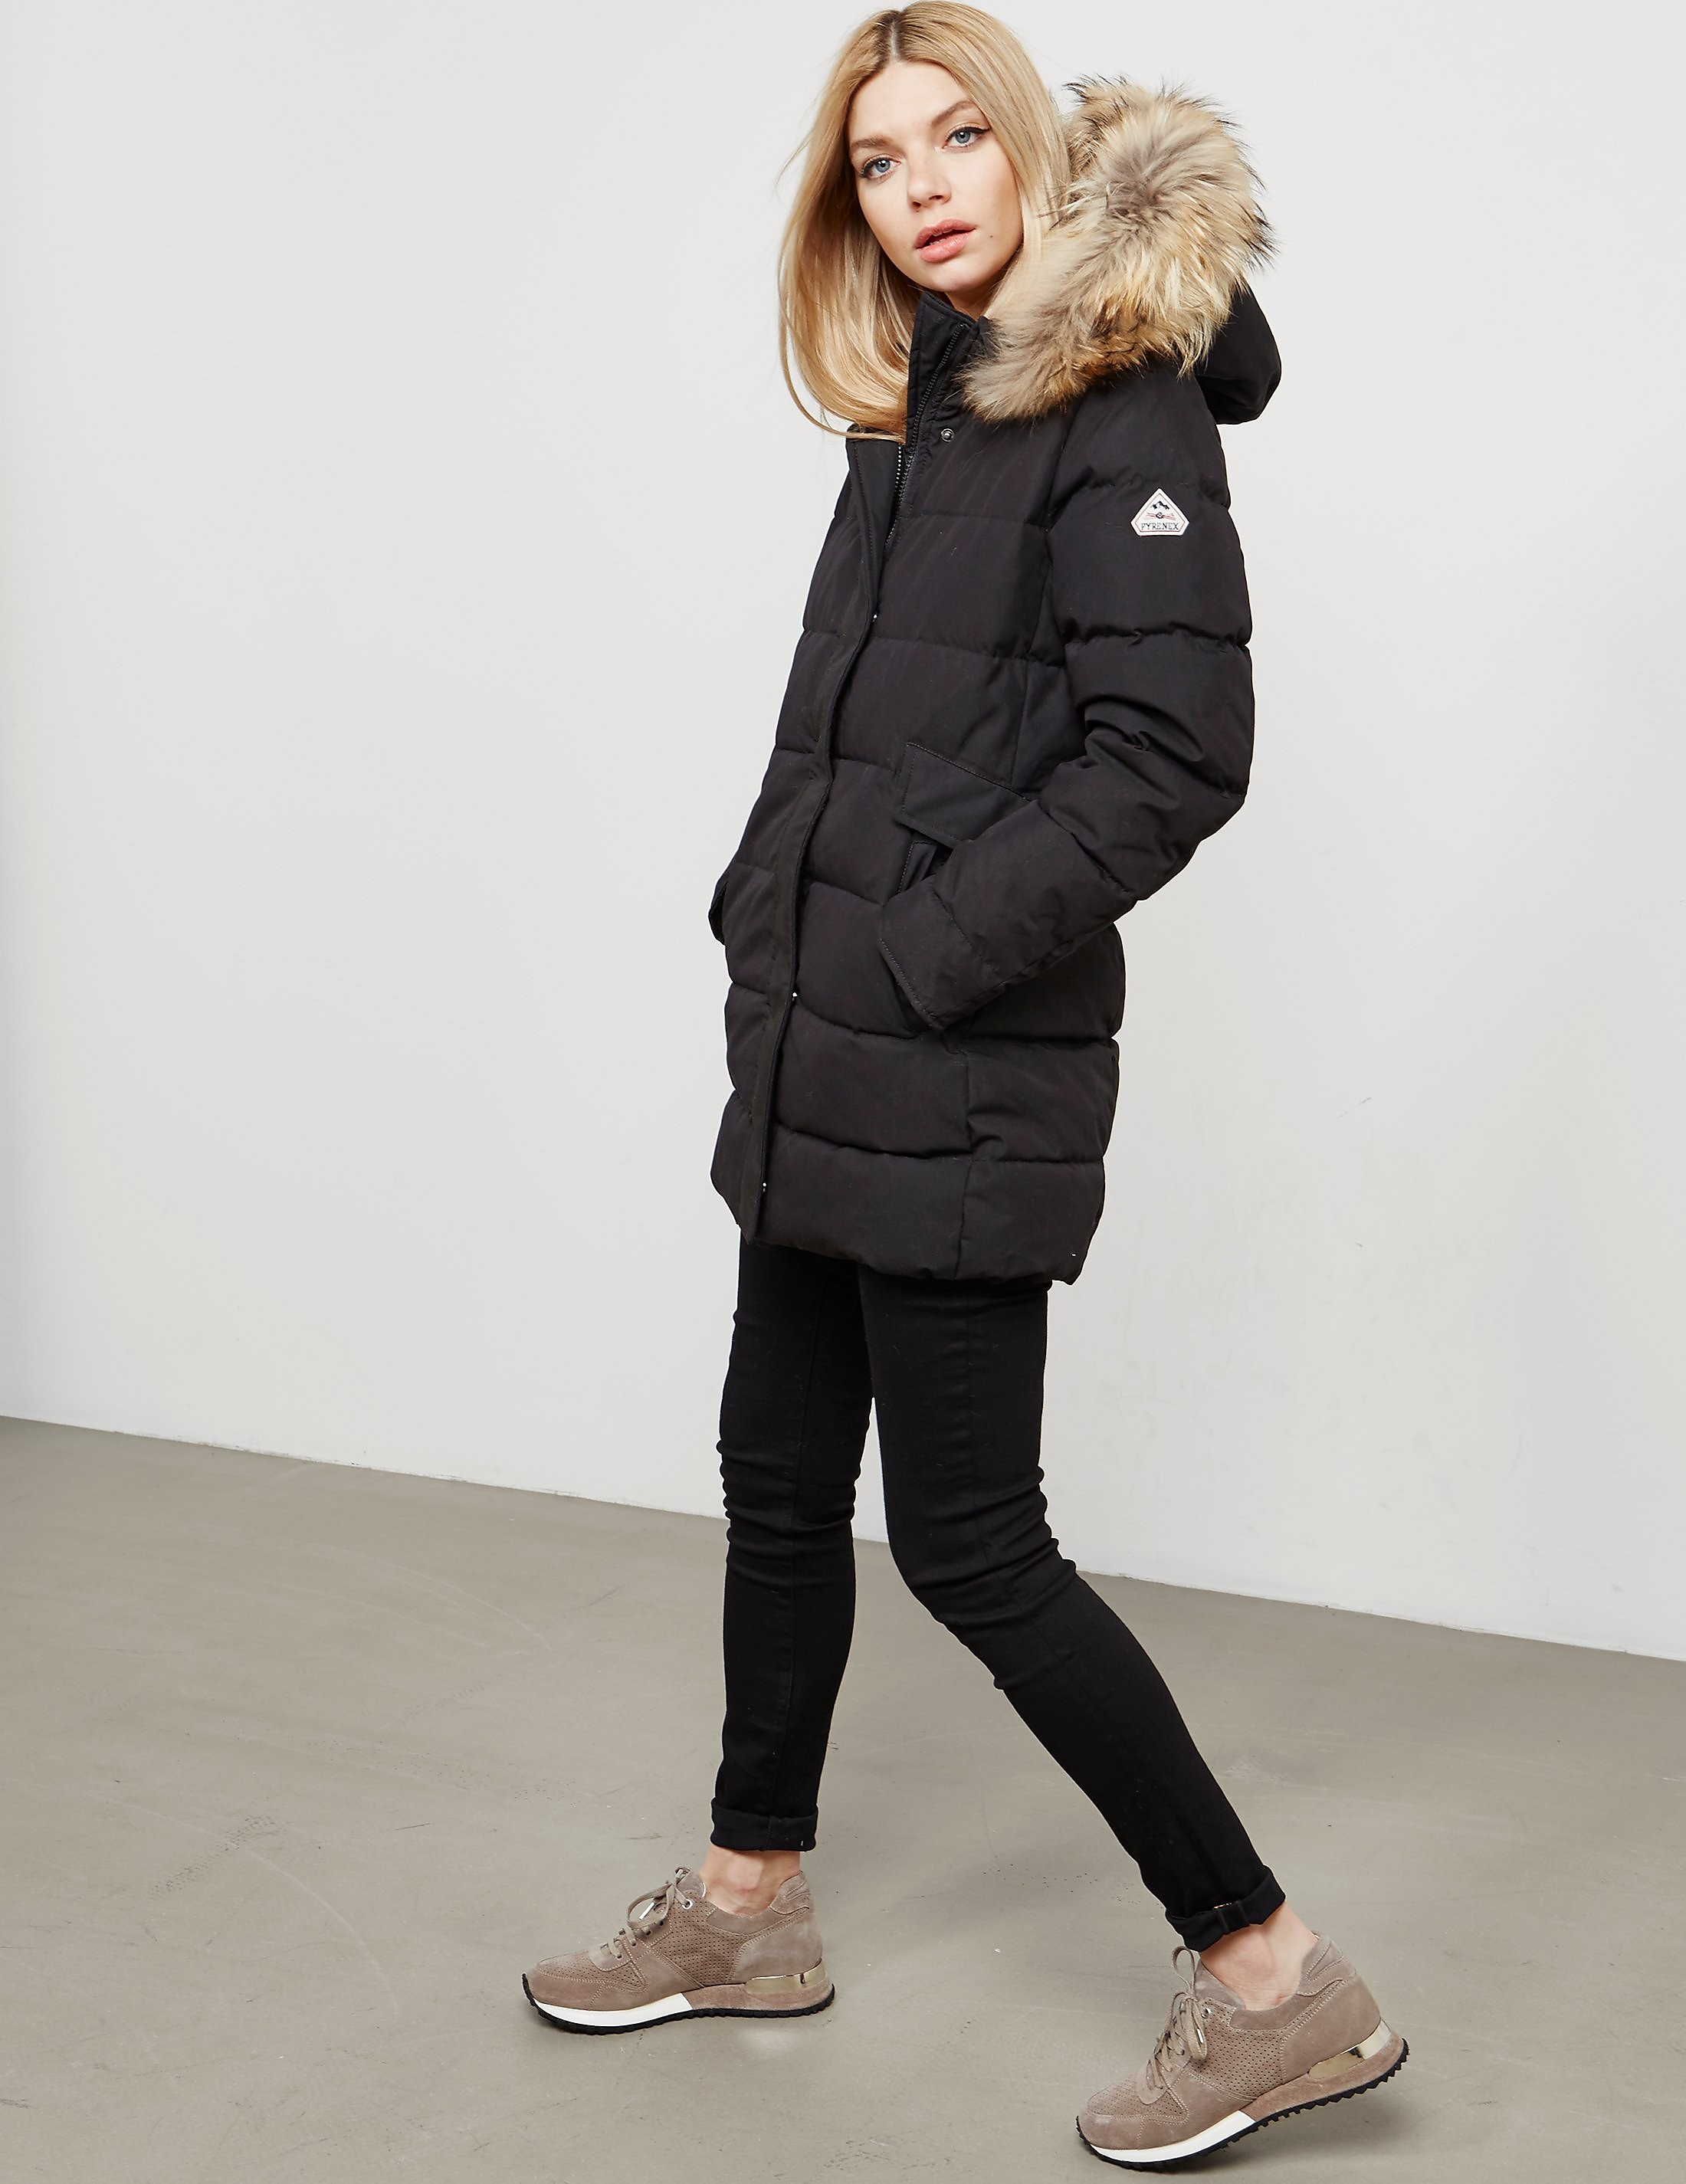 Pyrenex Grenoble Padded Jacket - Online Exclusive